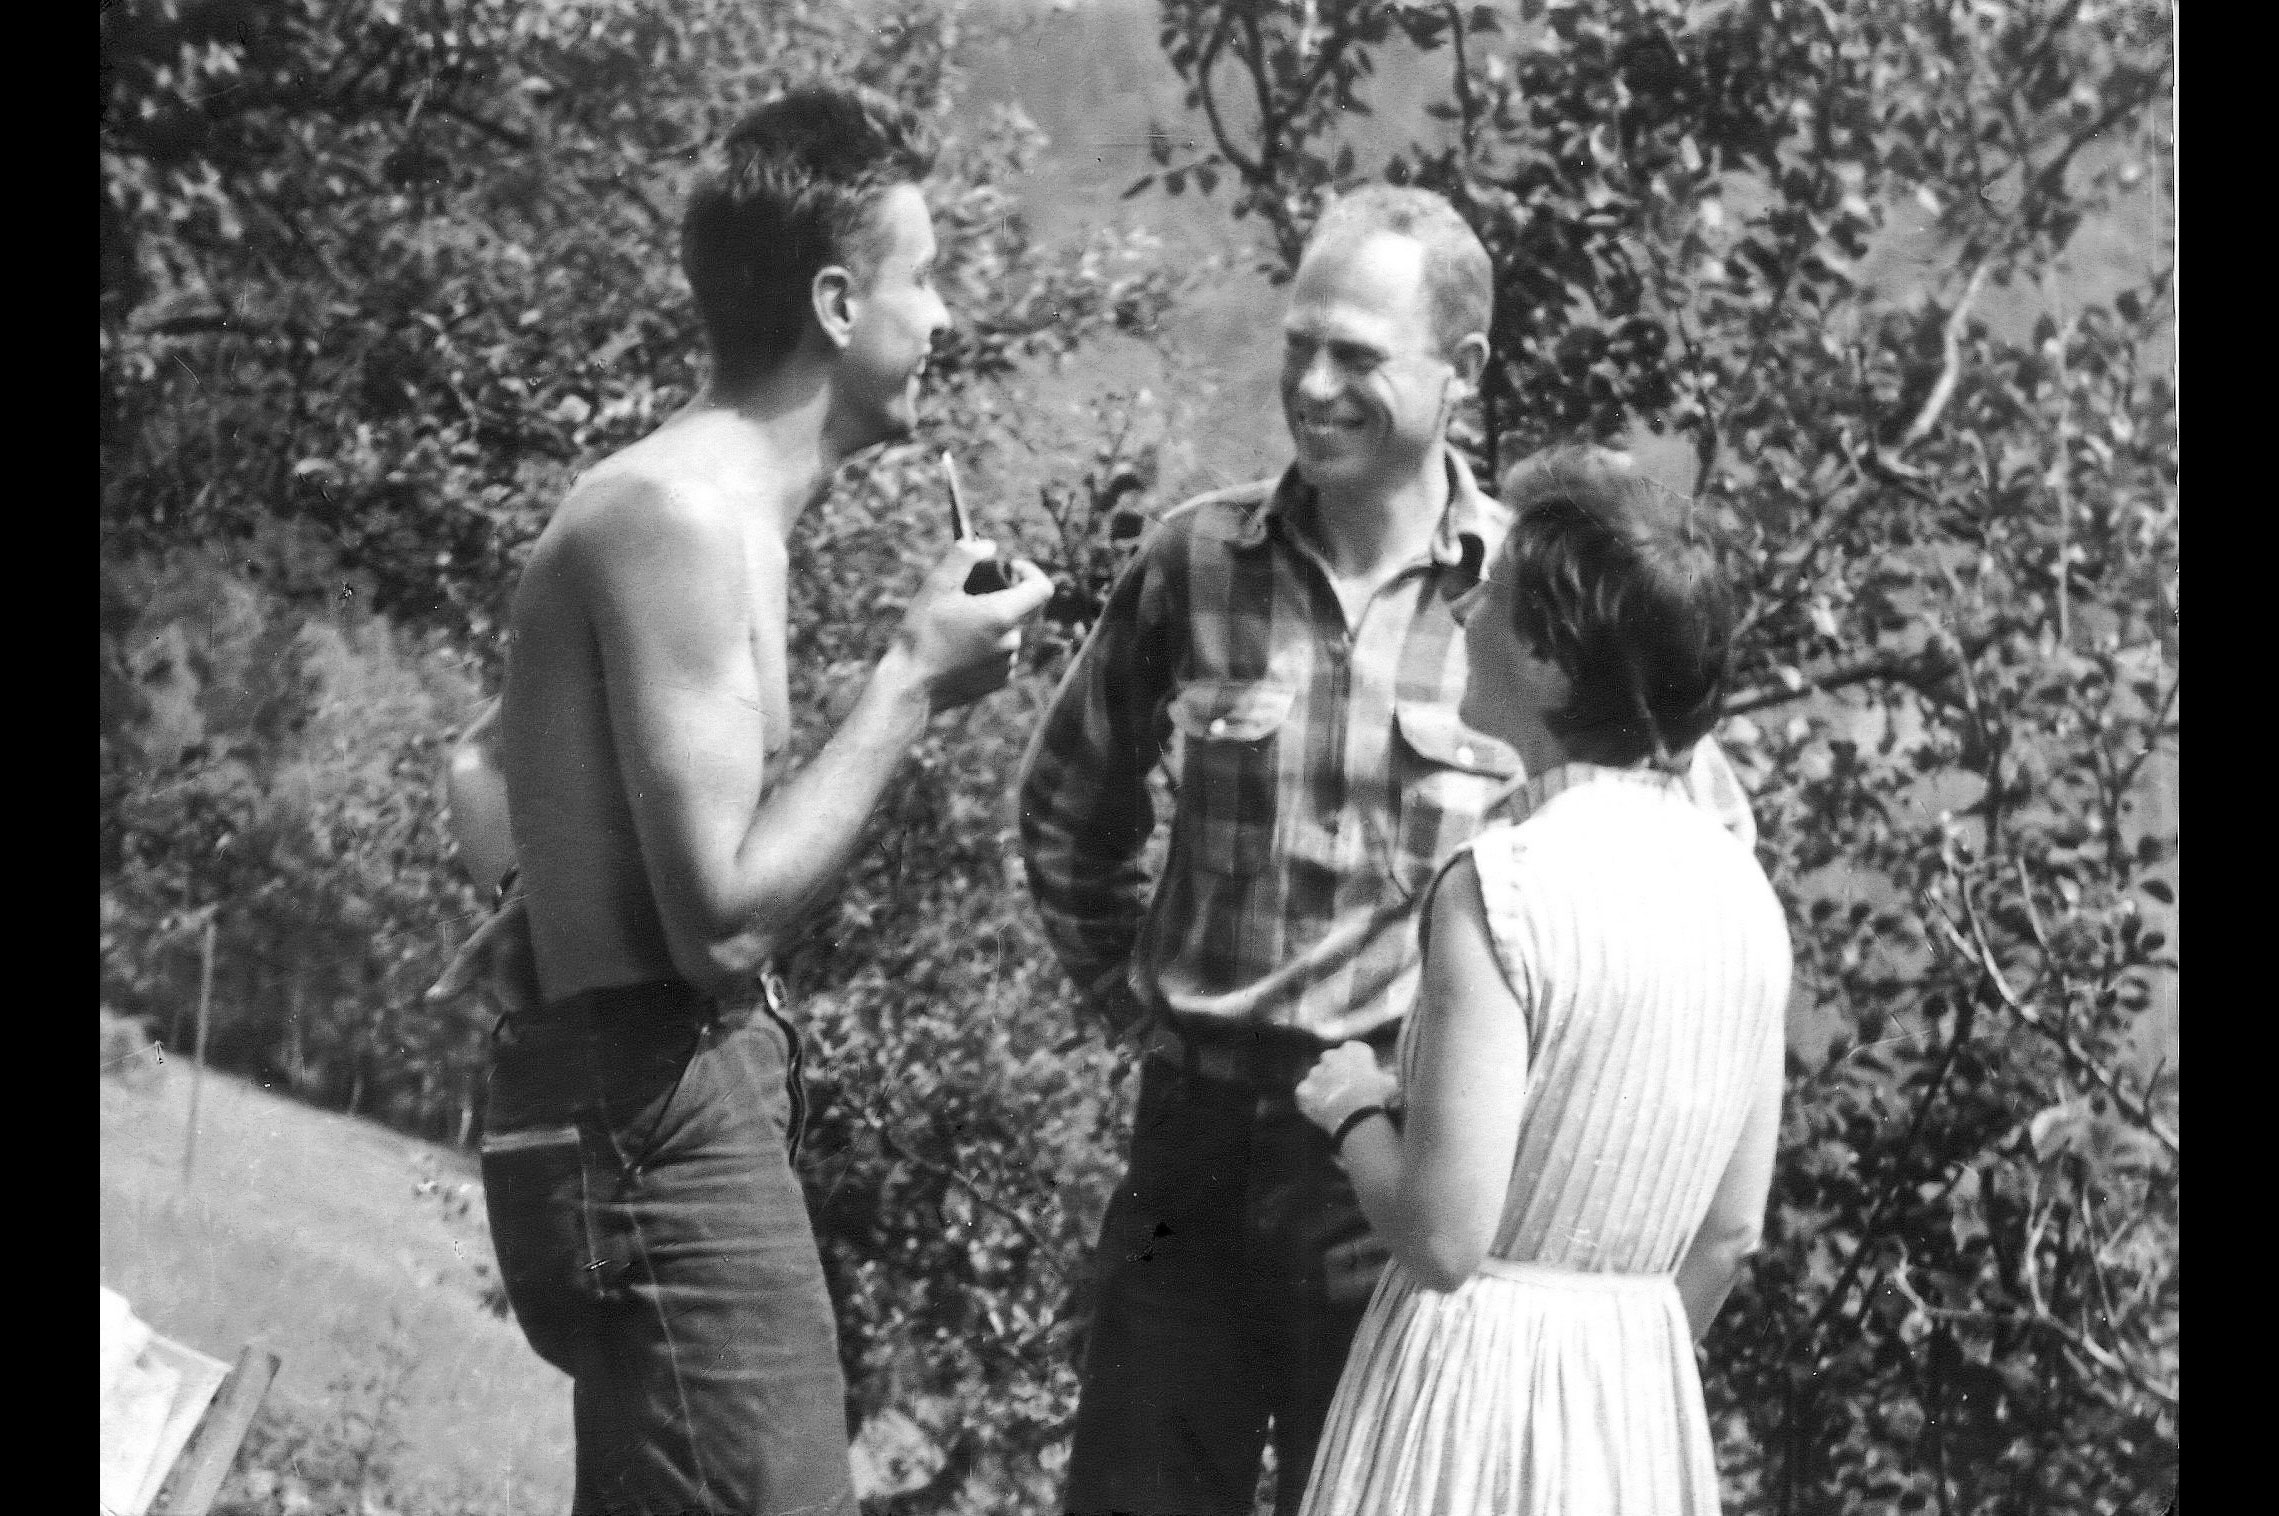 Pierre Gilles de Gennes with Cécile and Bryce DeWitt, summer 1953